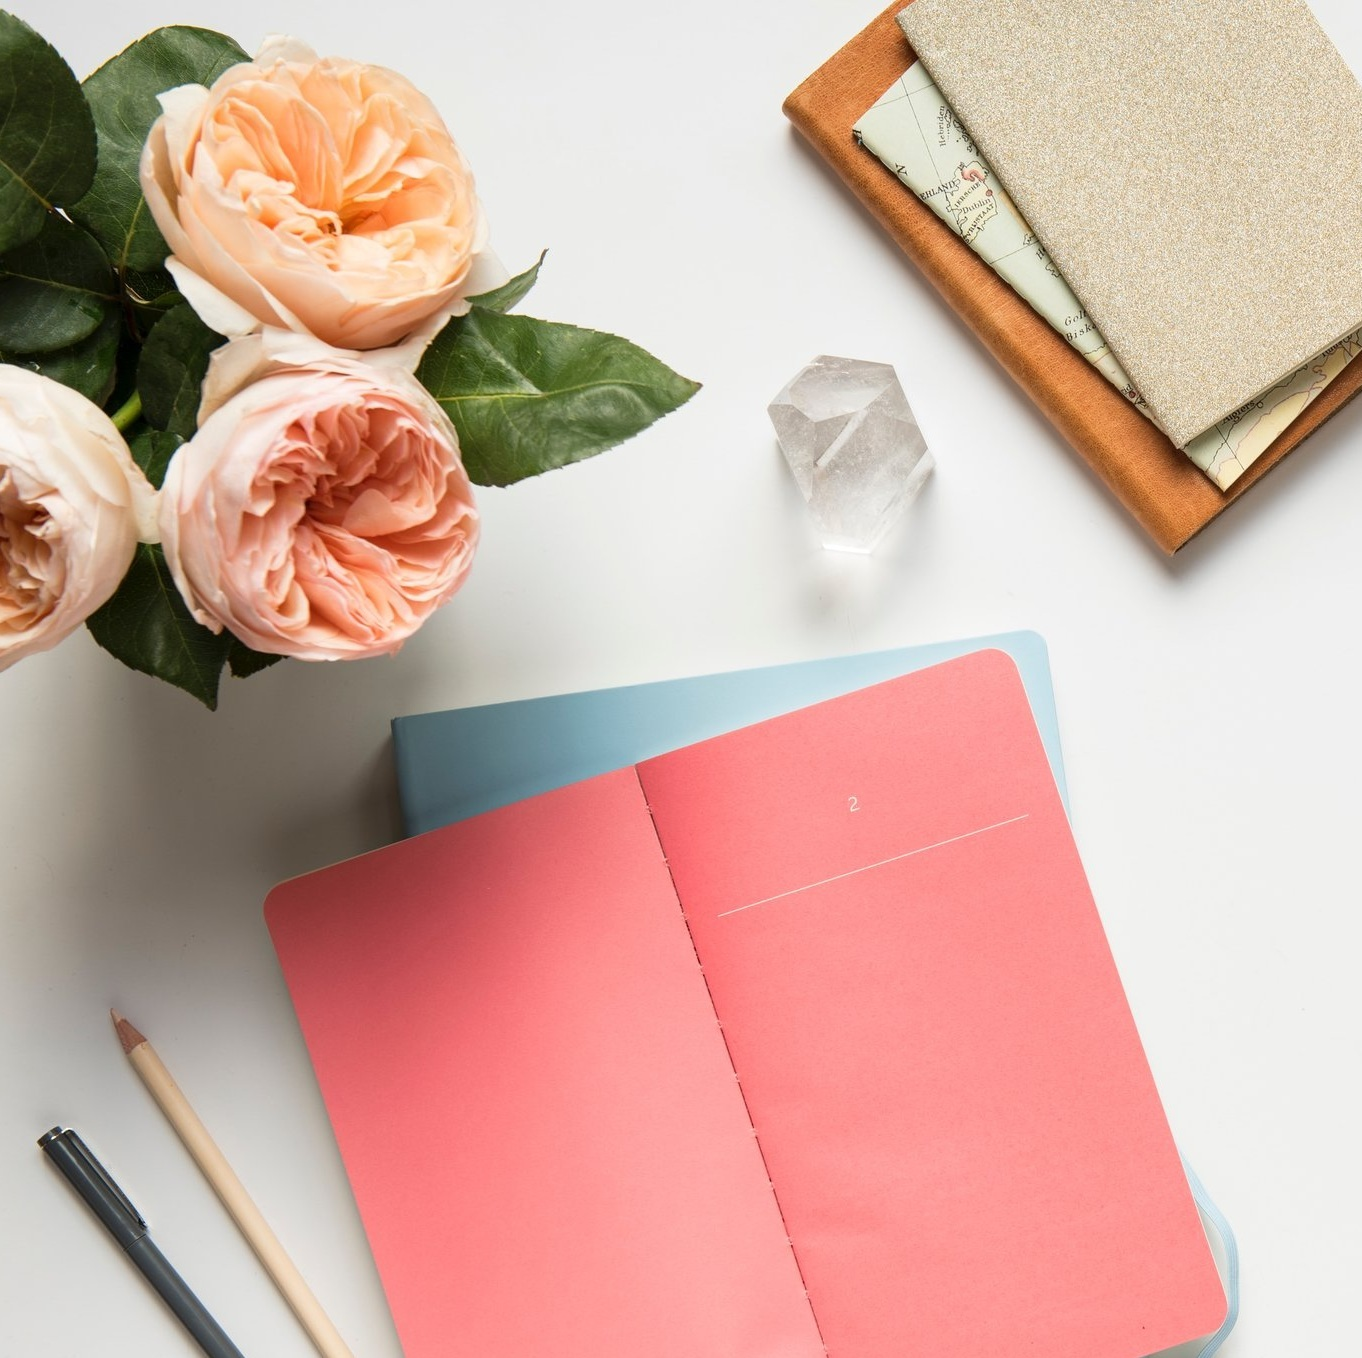 CONTENT CREATION + MANAGEMENT - From editorial pieces and blogs to copywriting for products, brands, and websites, my breadth of experience will come in handy whenever your copy (or editorial calendar) needs some sprucing up.